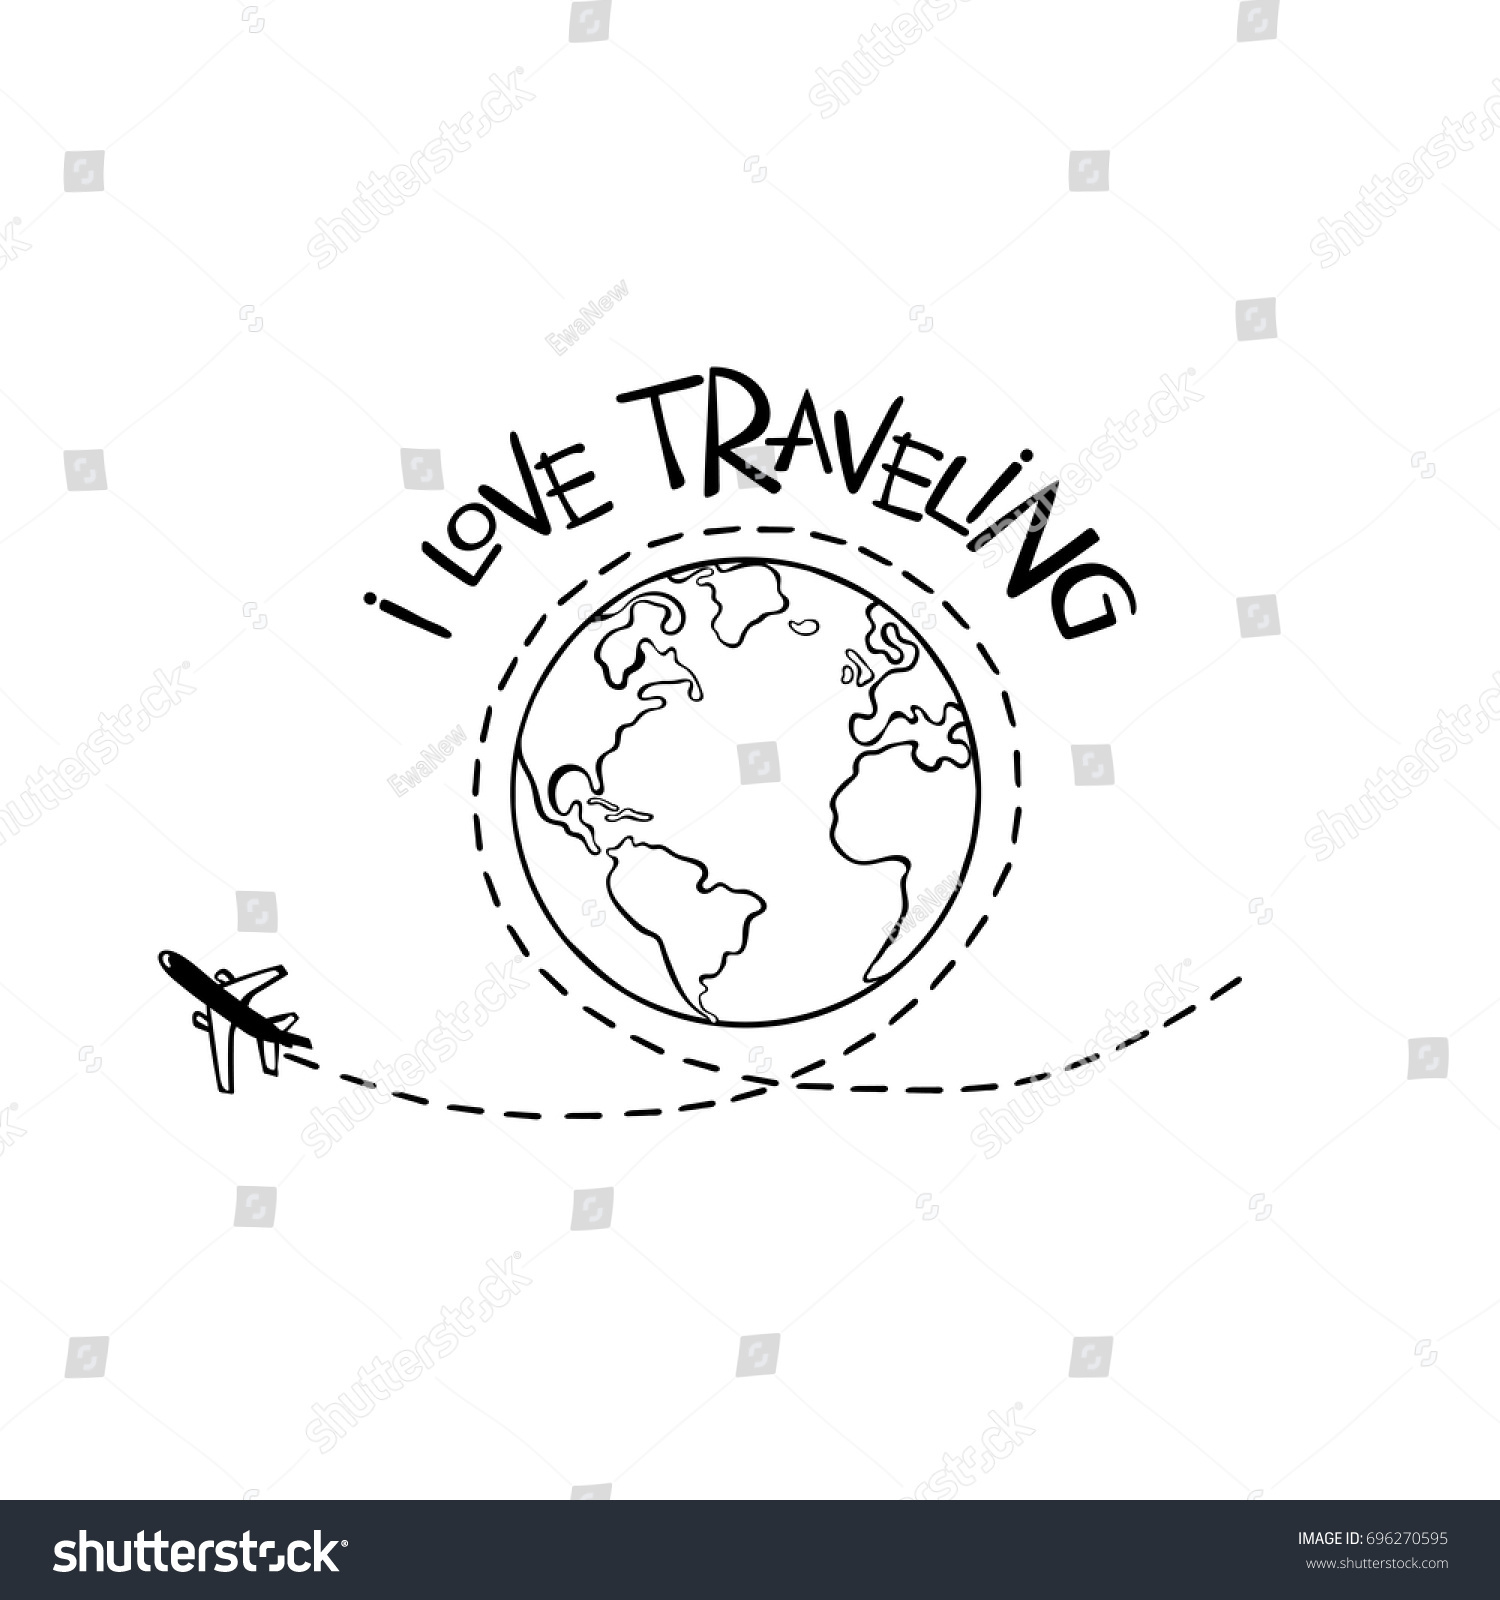 I love traveling. Earth. Aircraft. Isolated vector object on white background.